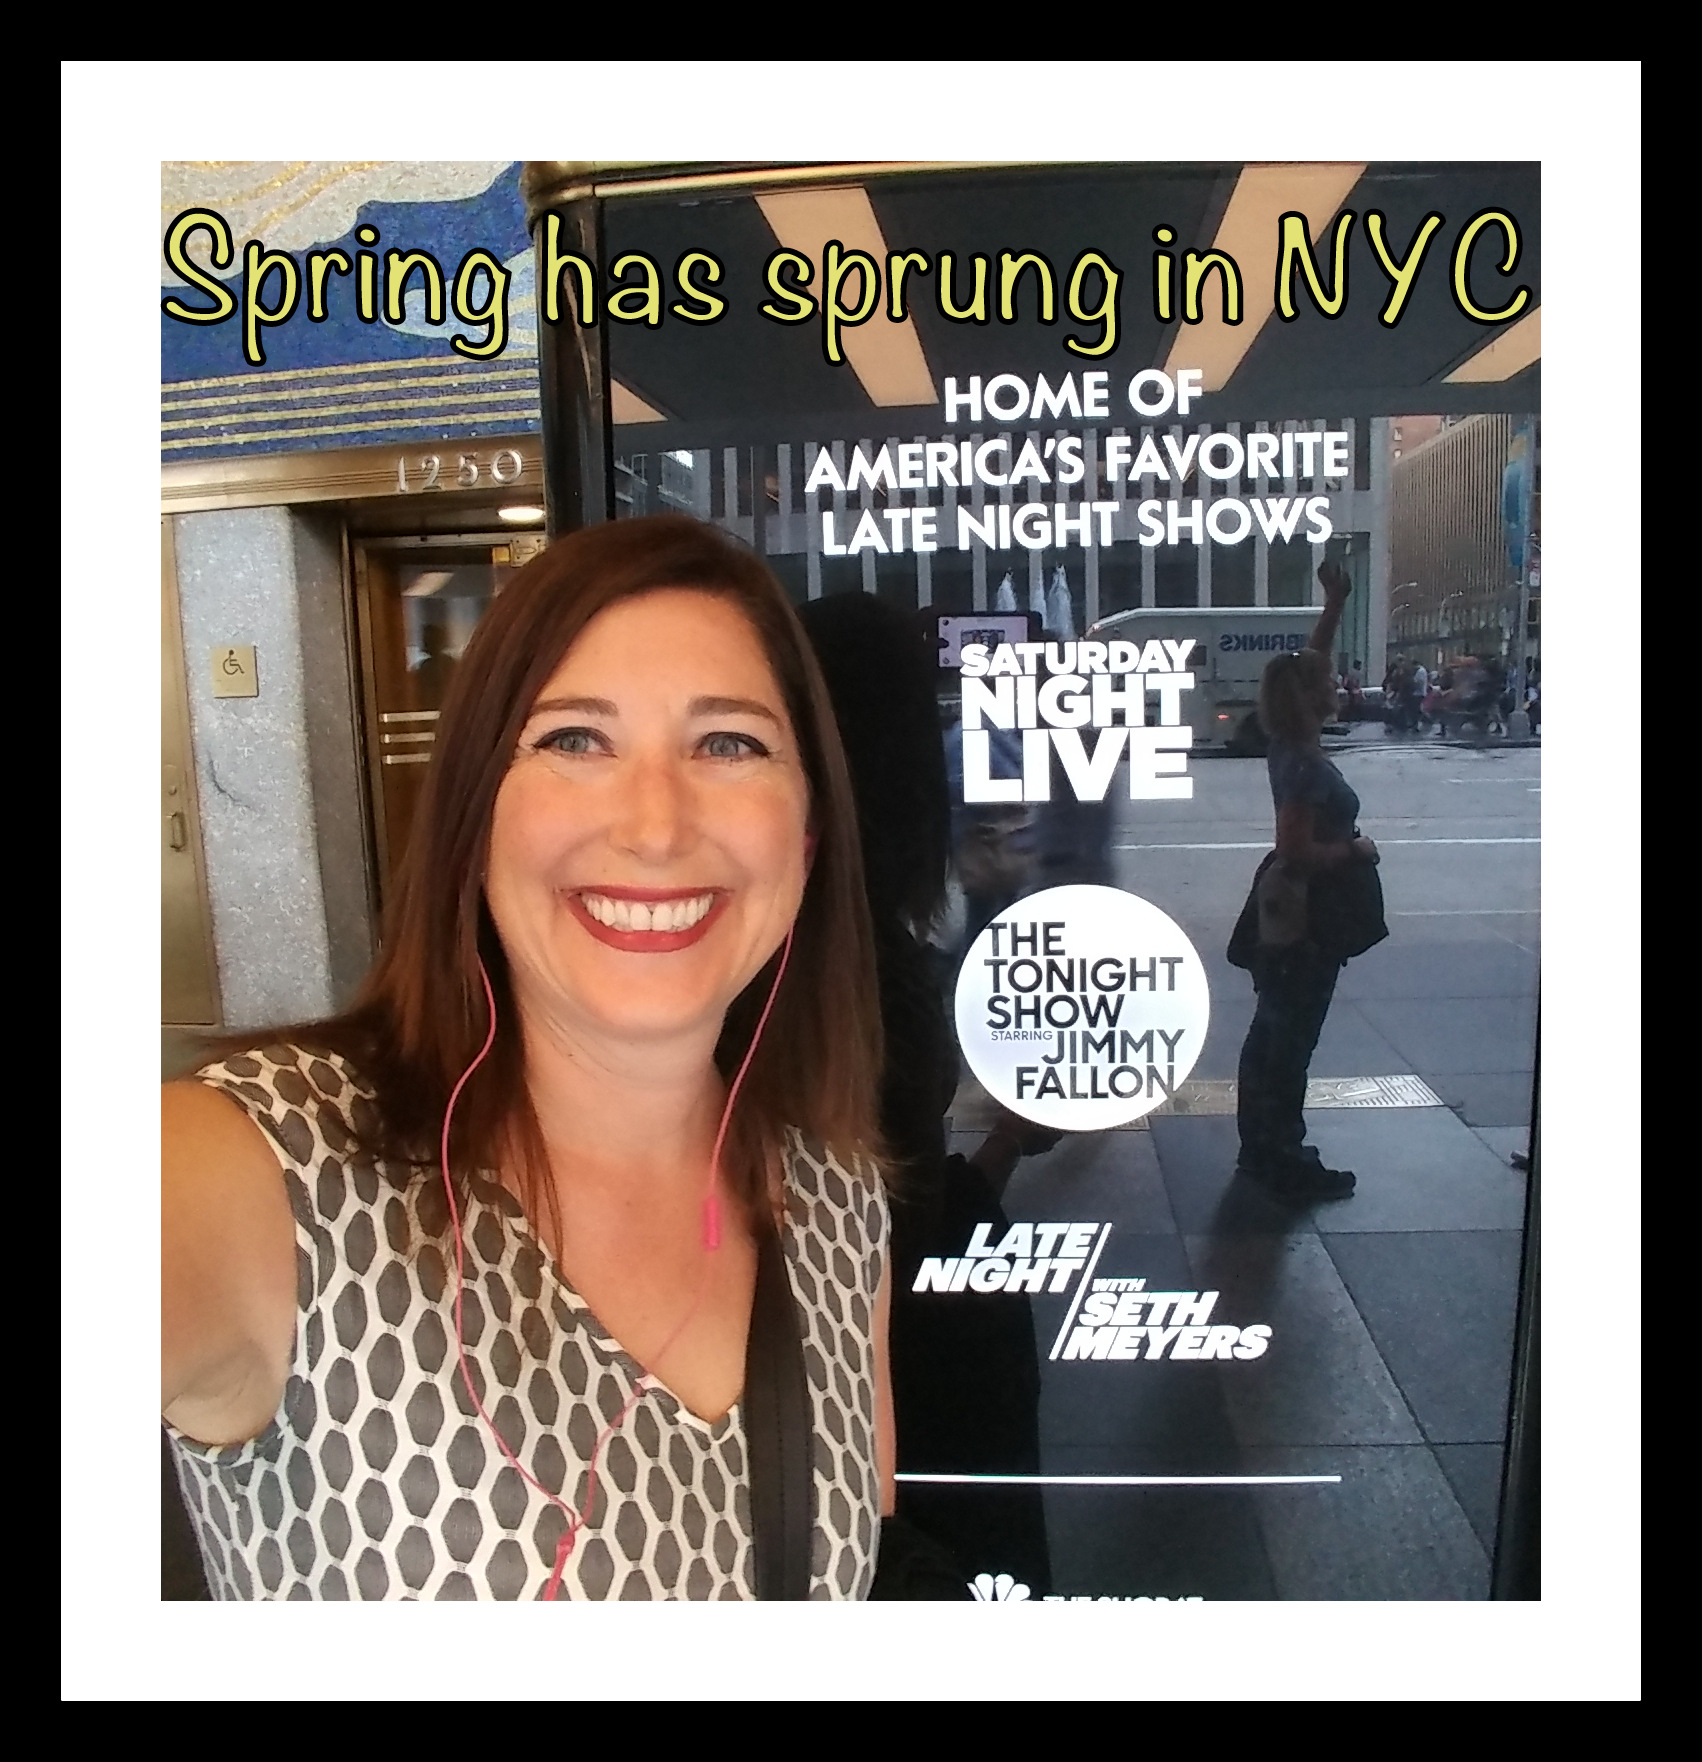 Spring has Sprung in NYC with Lisa Niver